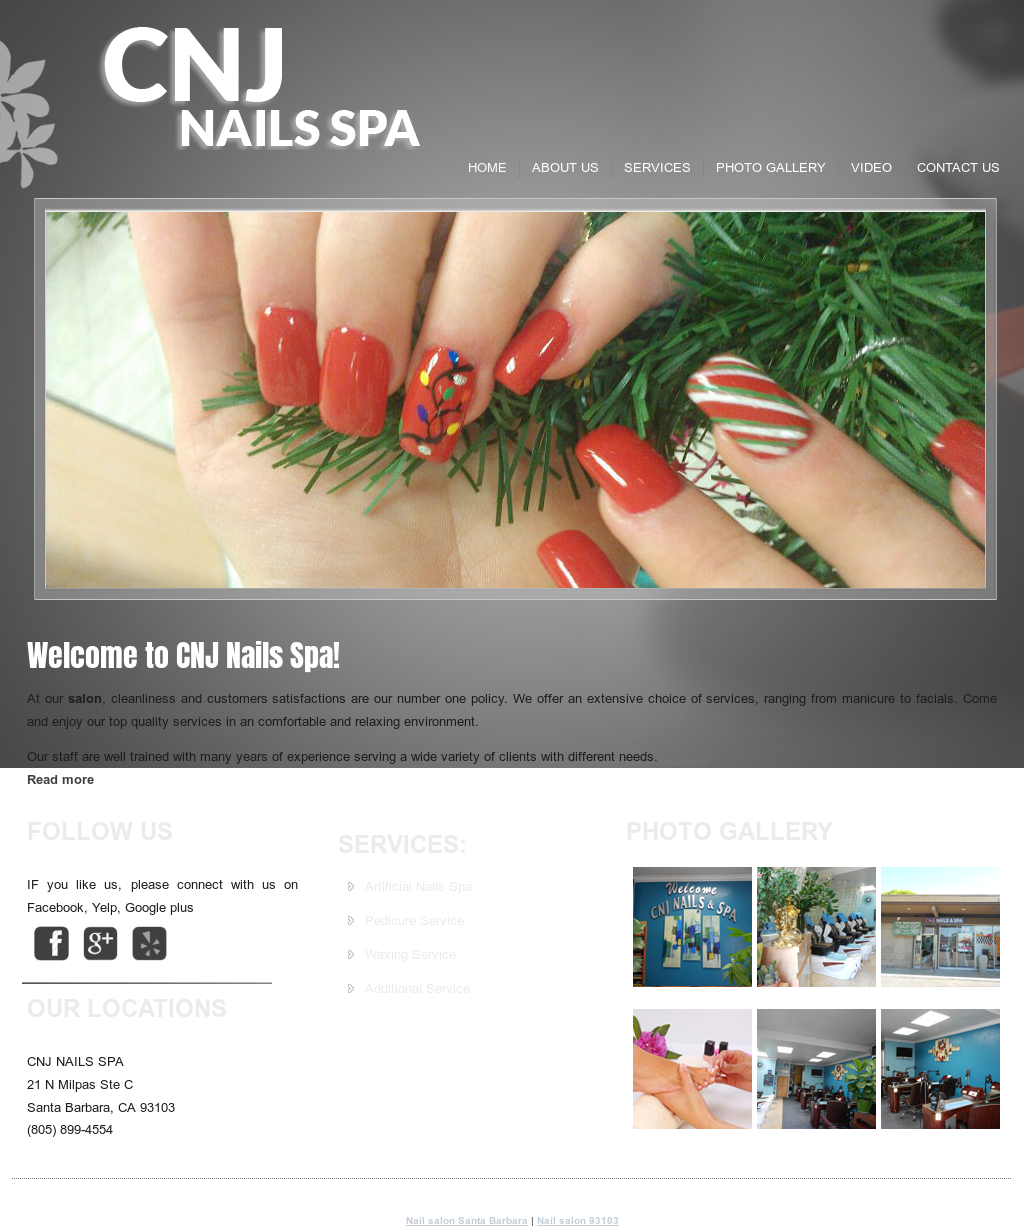 Cnj Nails Spa Competitors, Revenue and Employees - Owler Company Profile